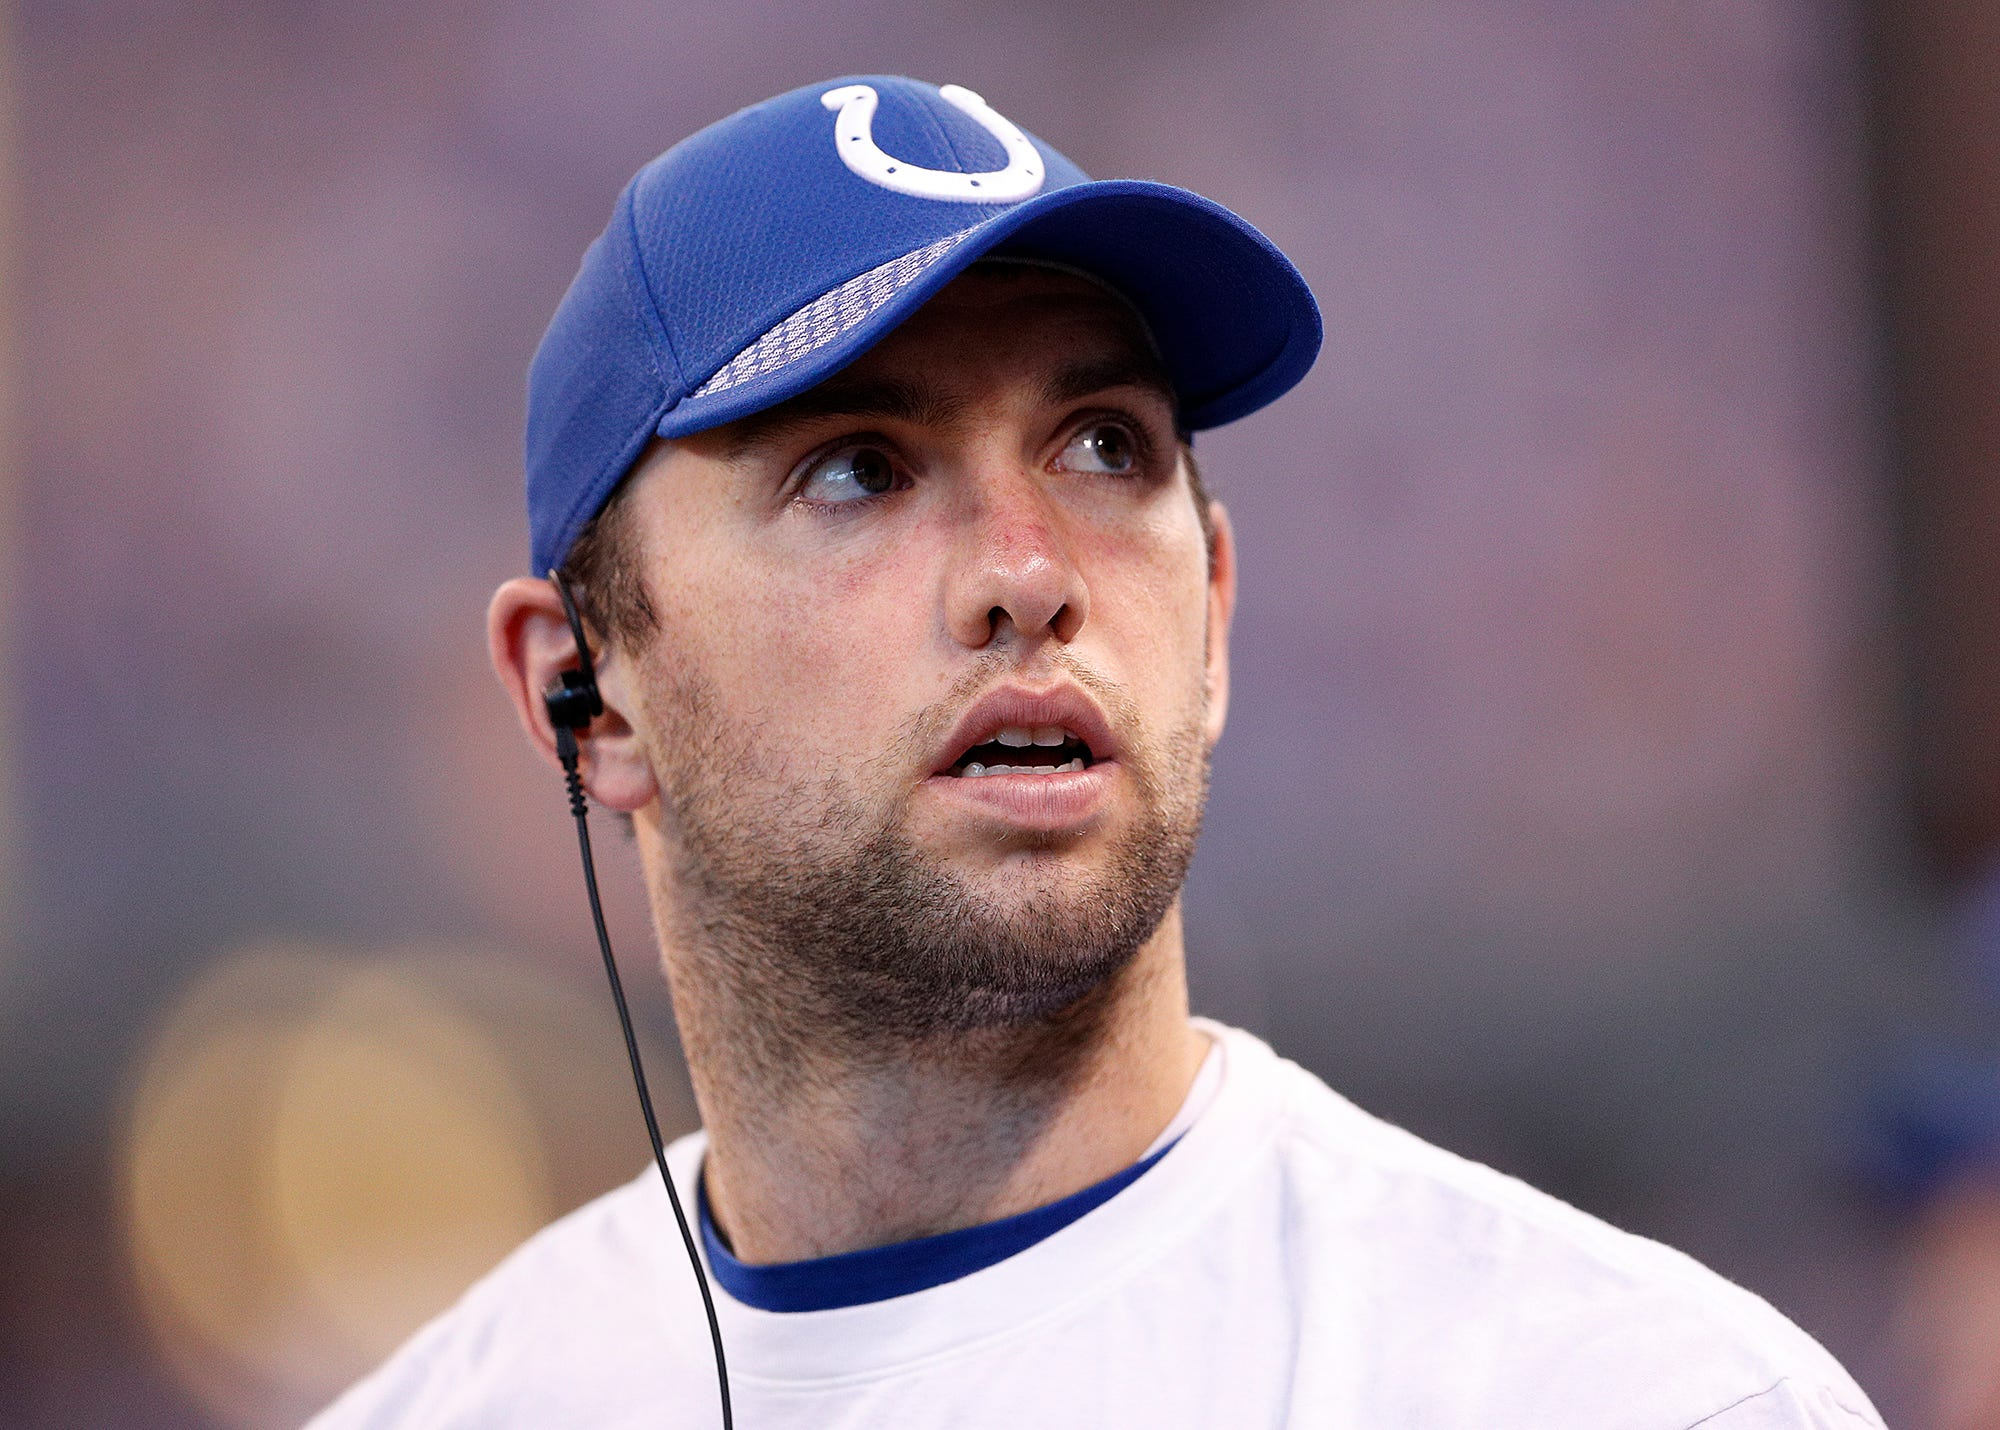 The final hurdles for Andrew Luck